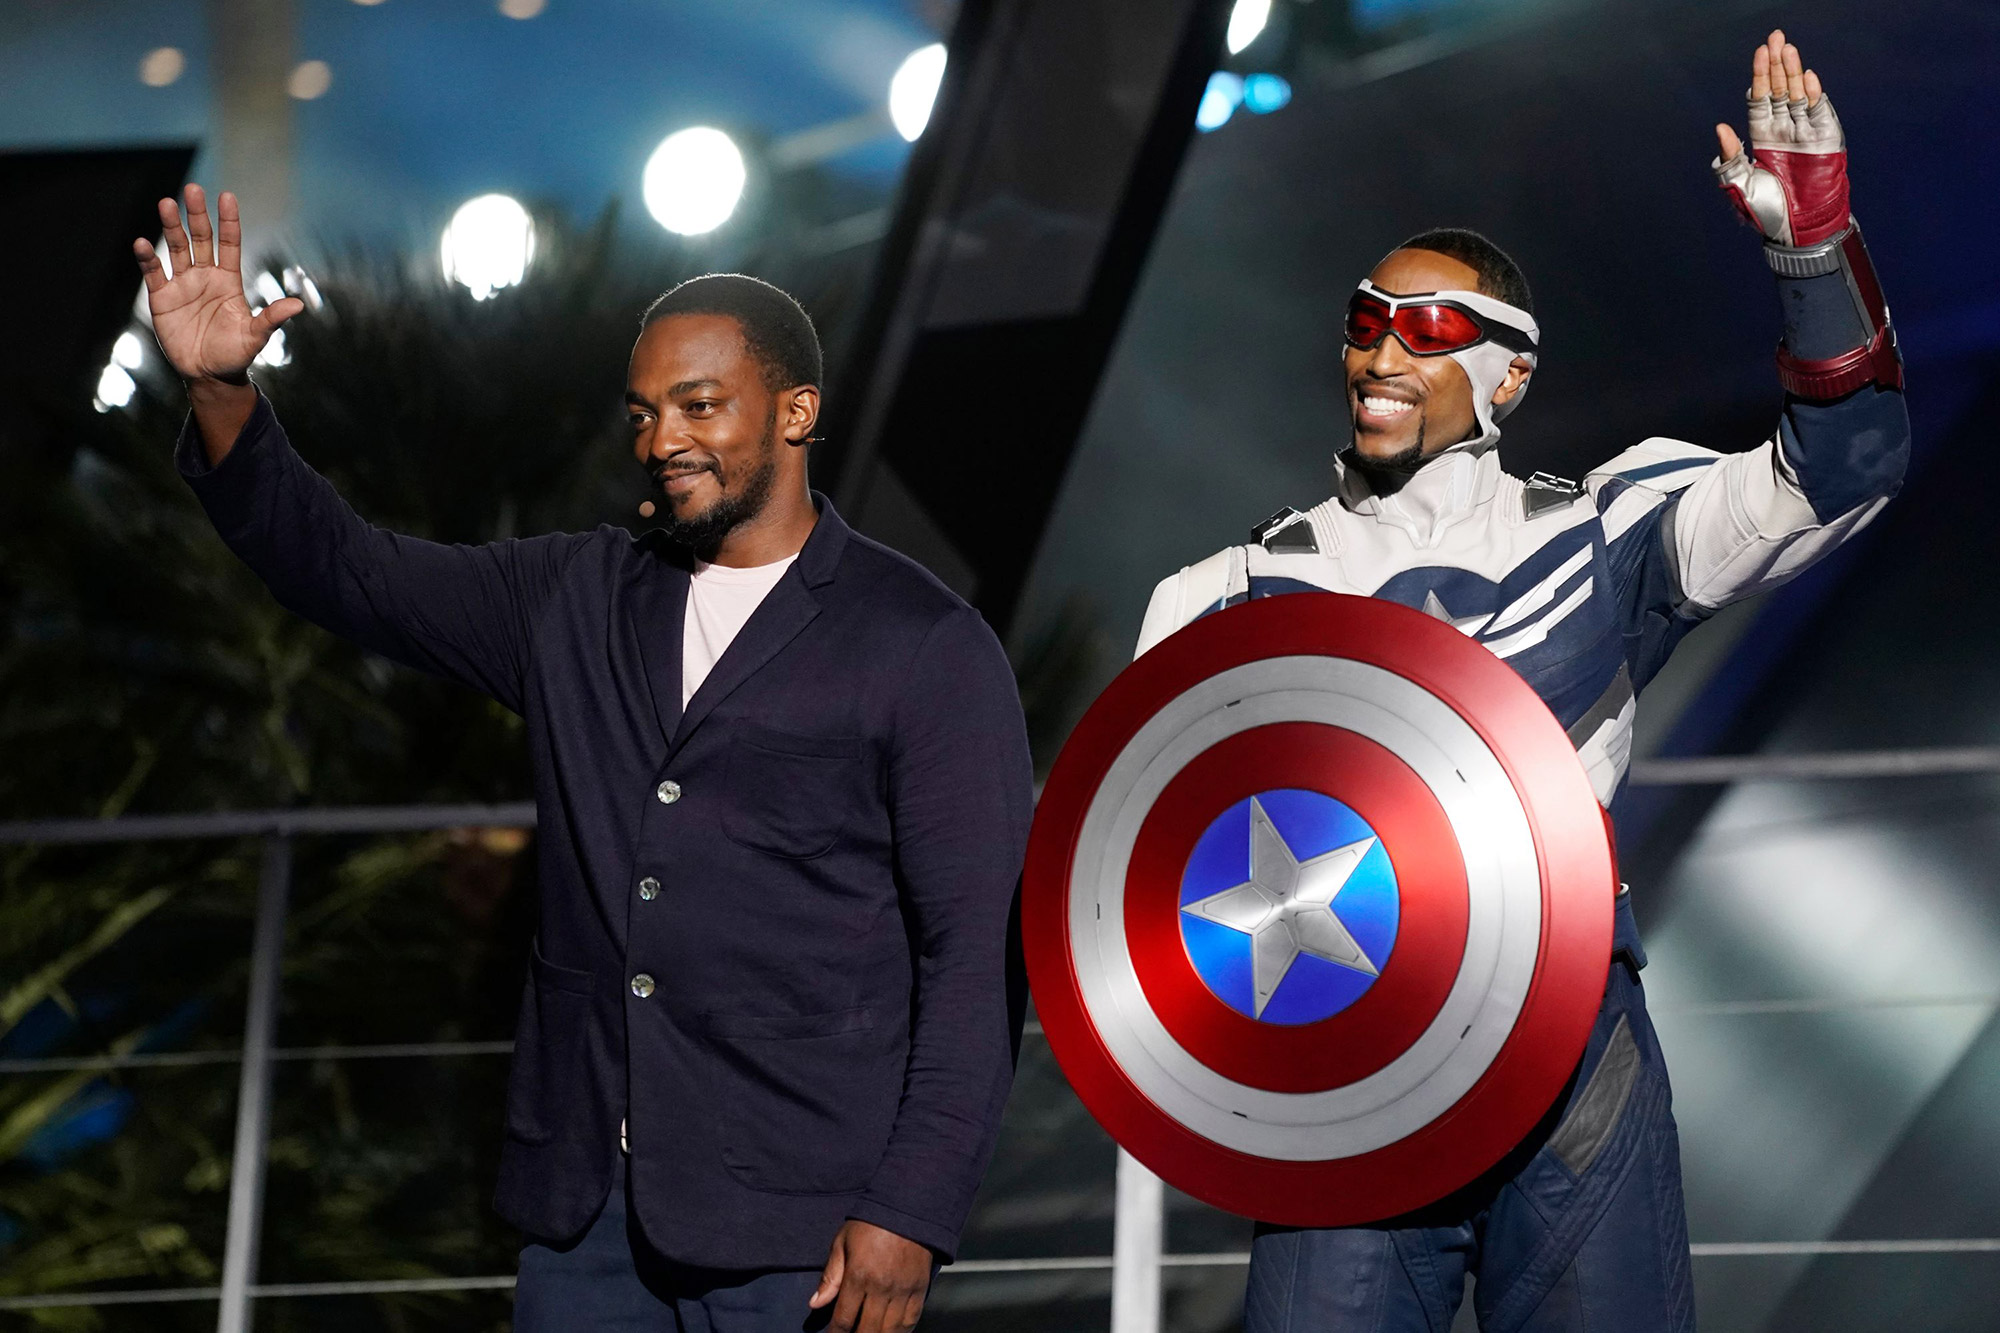 Anthony Mackie, left, and his character Captain America, right, appear on stage at the Avengers Campus dedication ceremony at Disney's California Adventure Park, in Anaheim, Calif